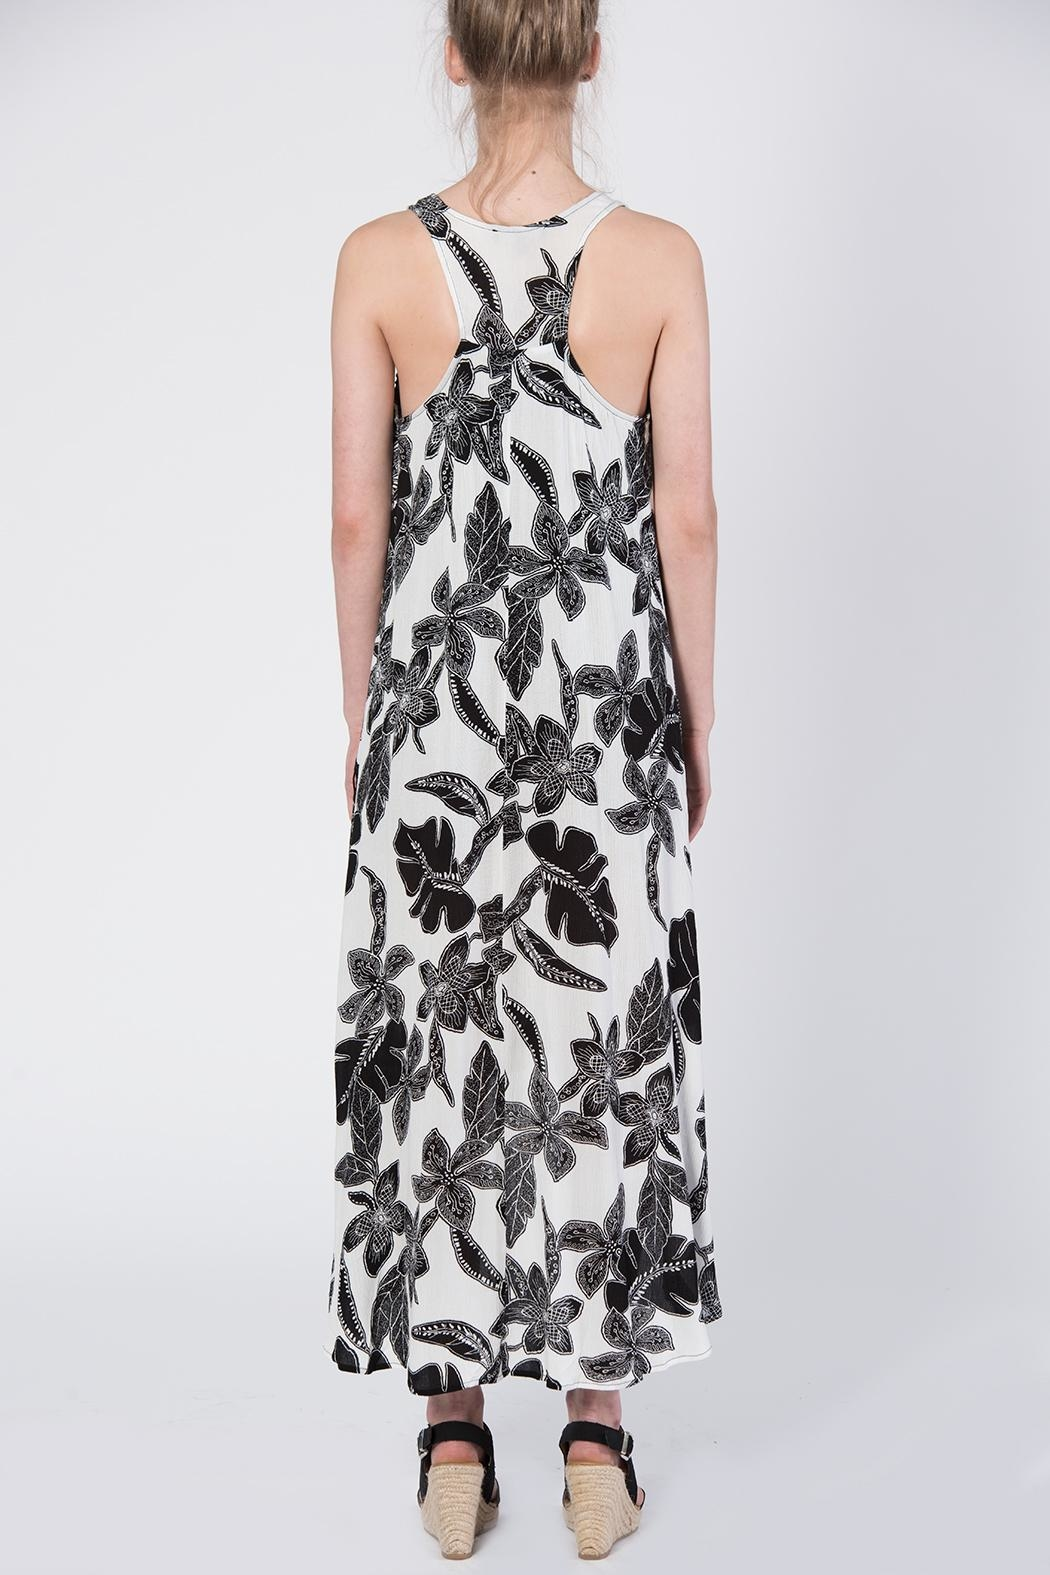 BEULAH STYLE Floral High Low Dress - Side Cropped Image